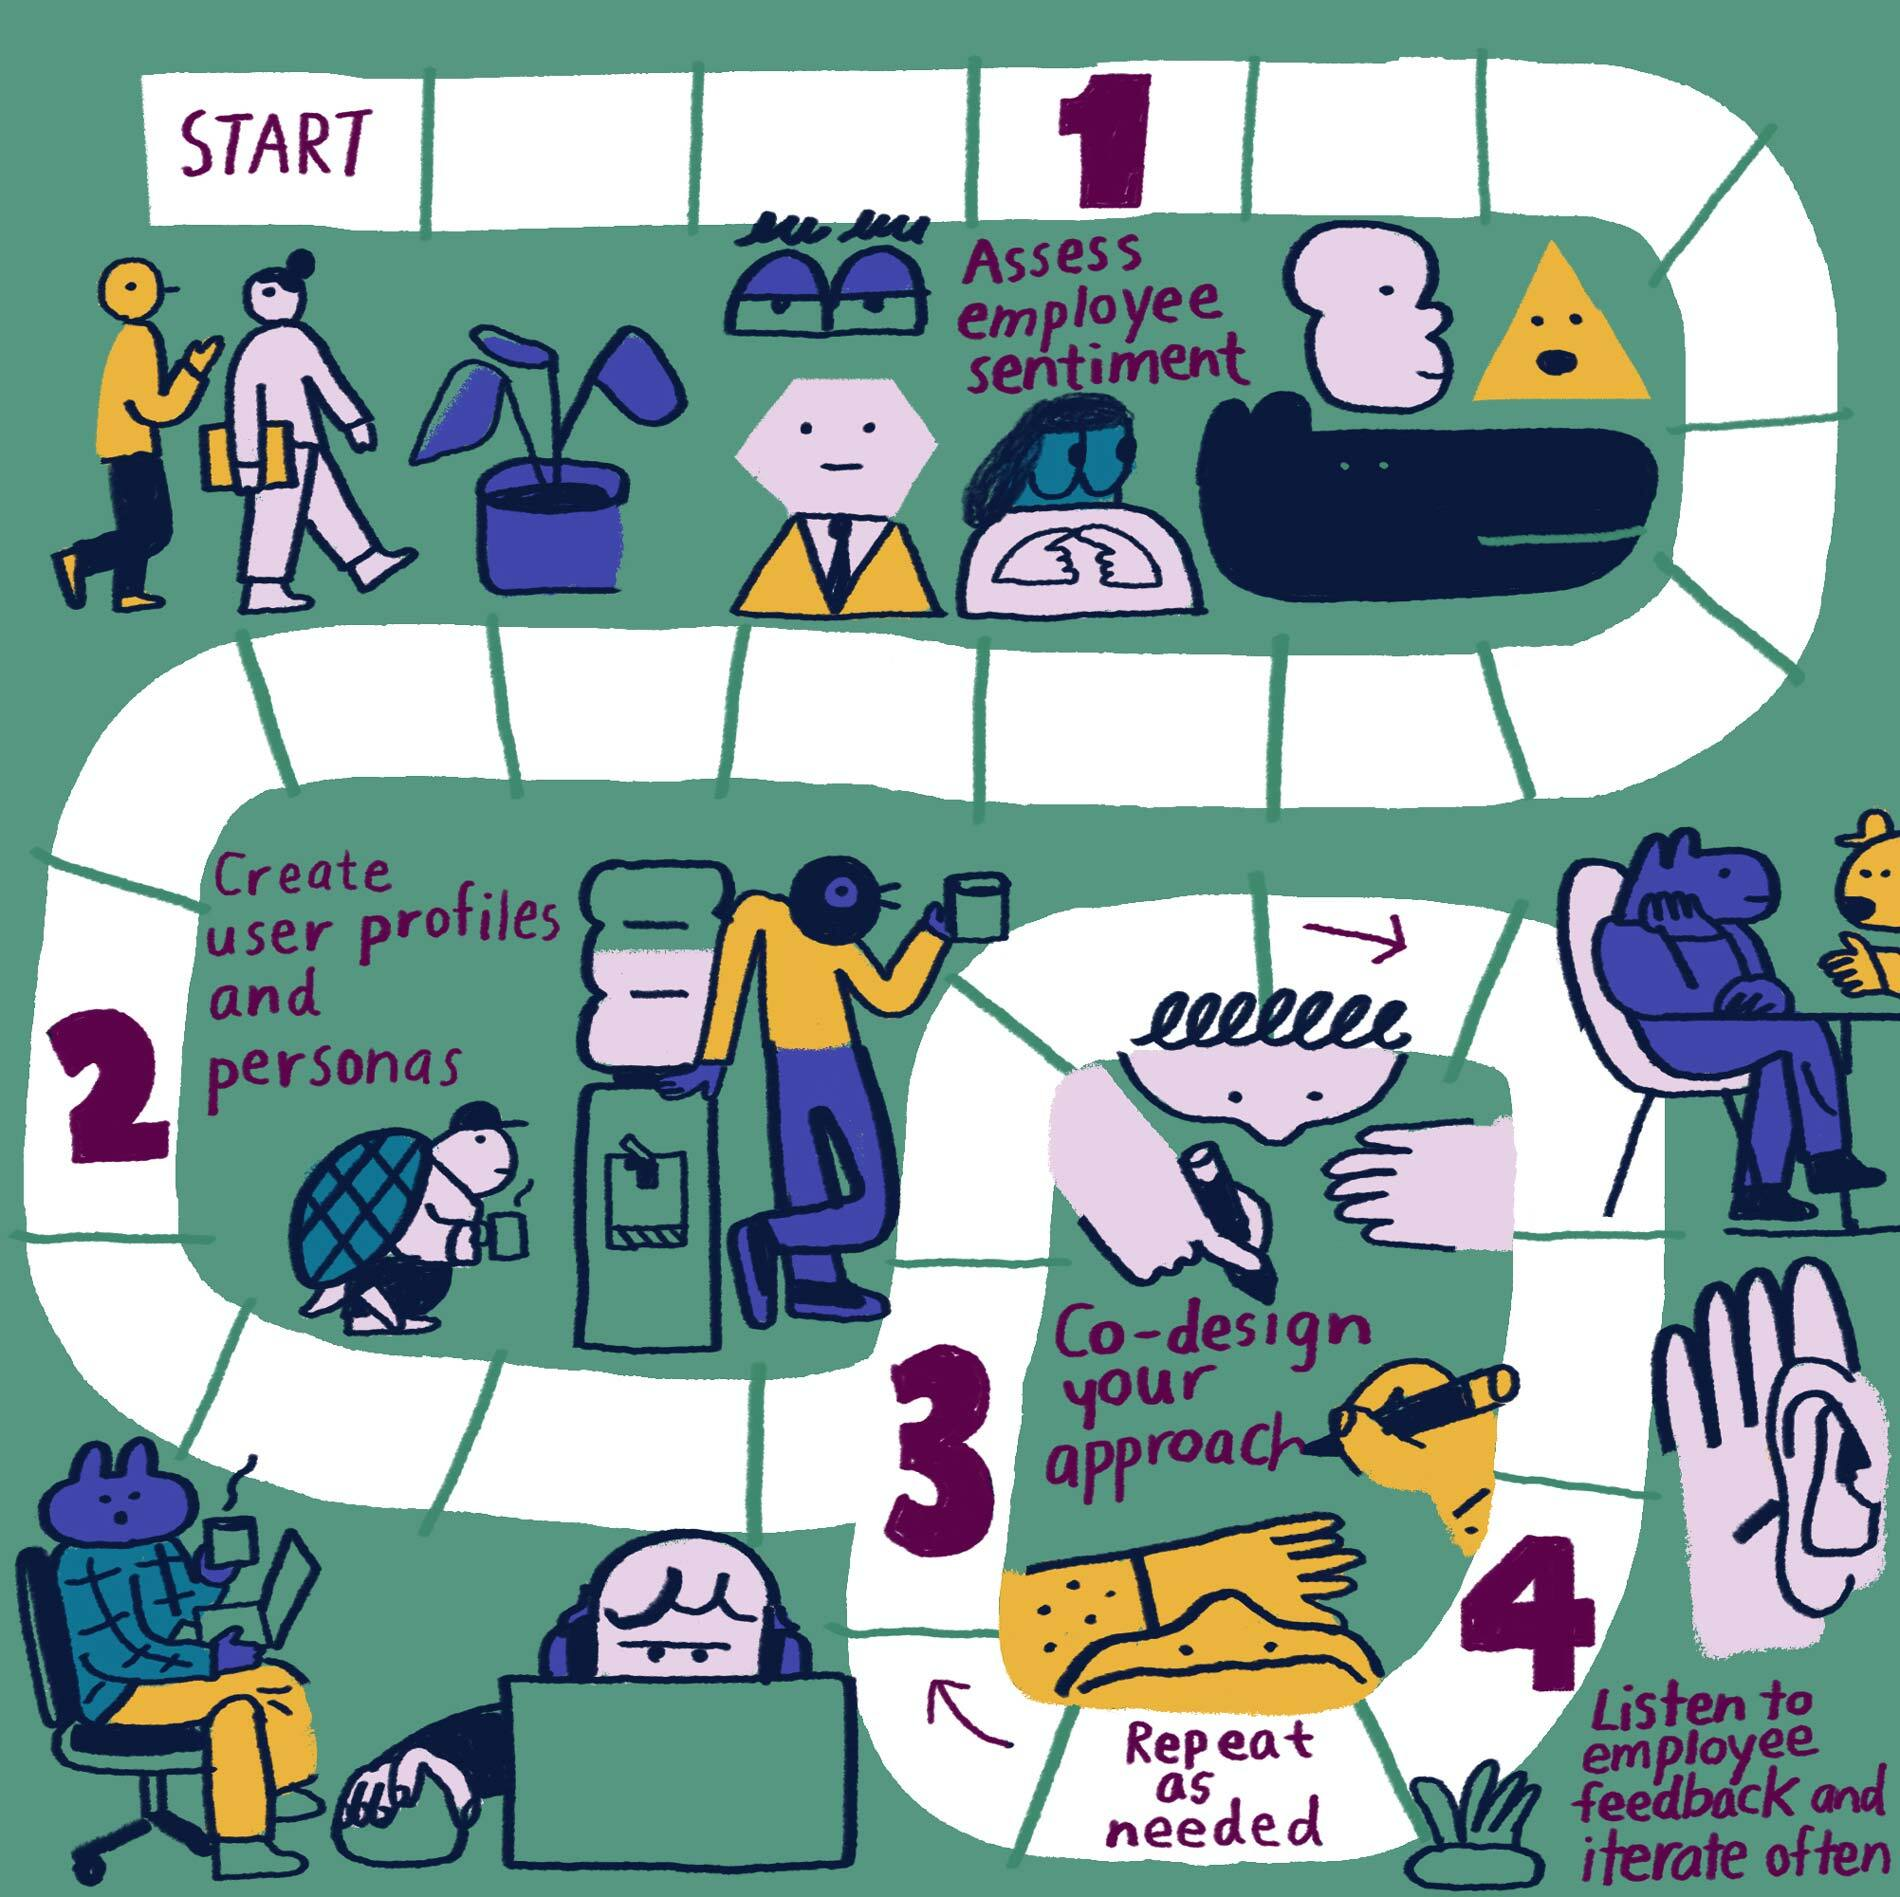 A map showing the journey to leading change by putting empathy in action. Pit stops on the road include: Assess employee sentiment, create user profiles and personas, co-design your approach, listen to employee feedback and iterate often